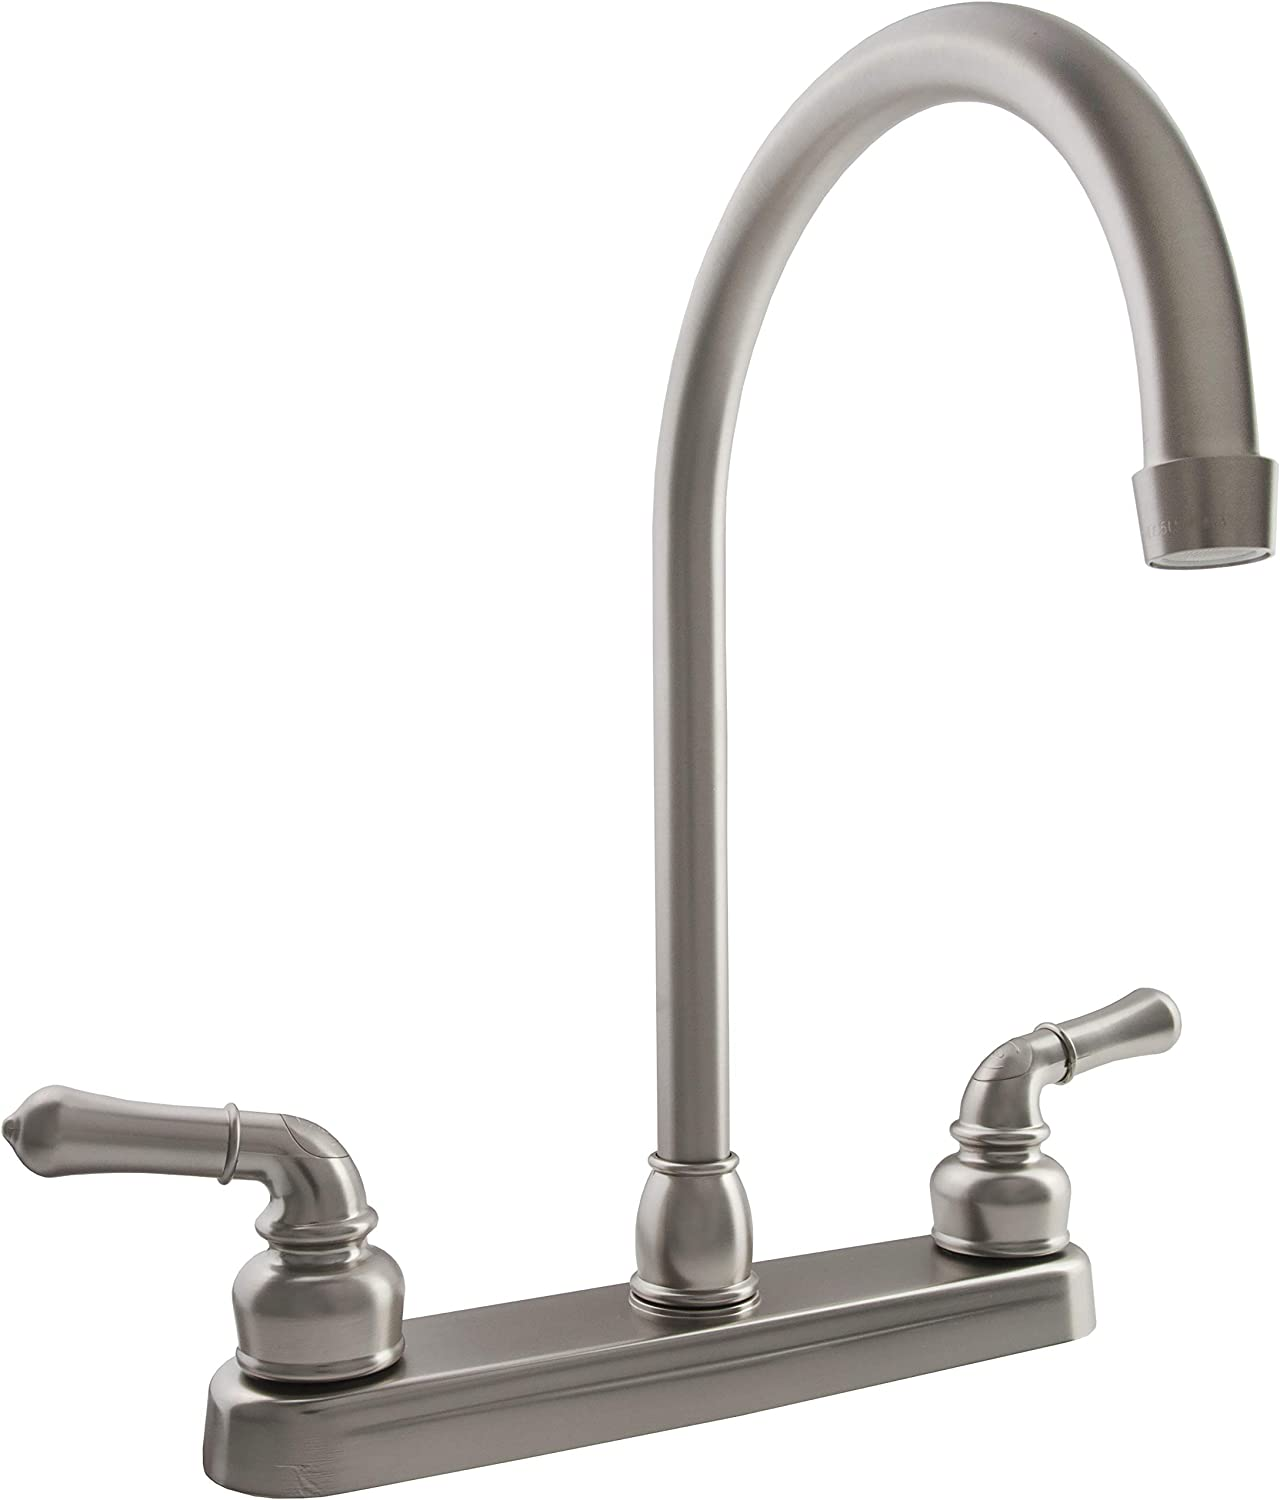 Dura Faucet DF-PK330HC-SN RV J-Spout Kitchen Faucet Brushed Satin Nickel